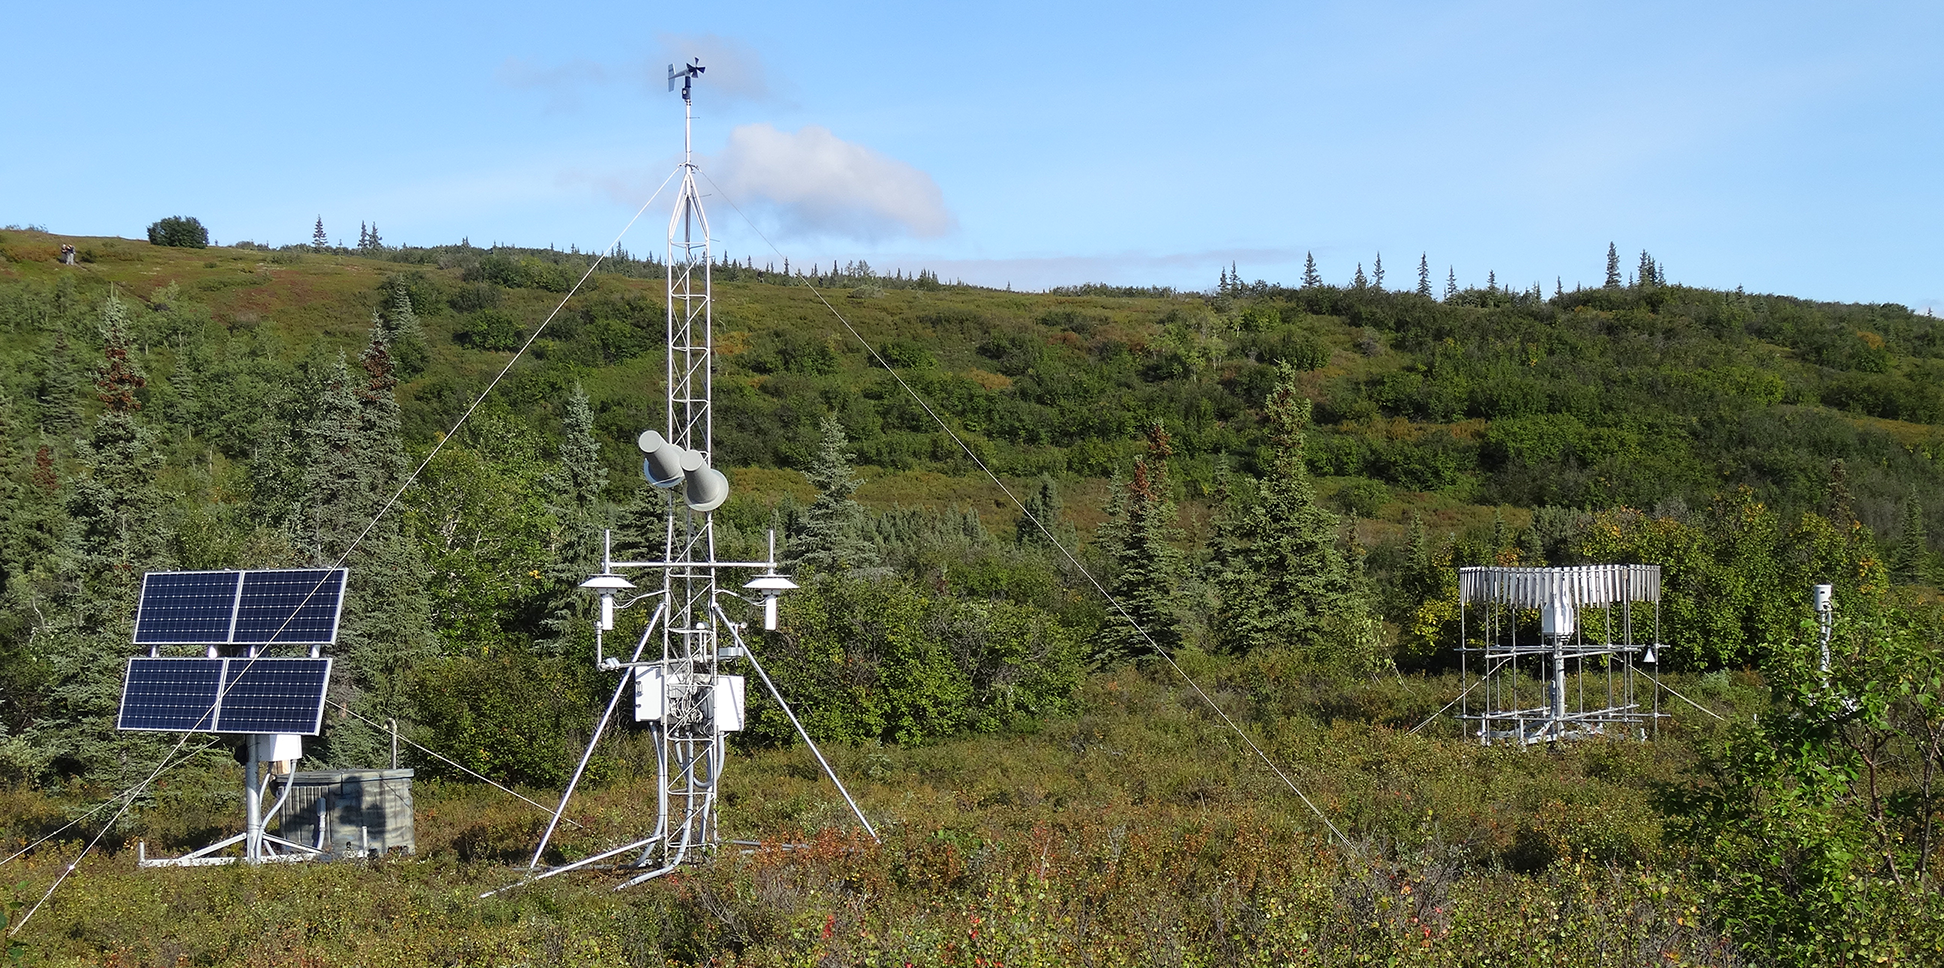 Site in Denali National Park, Alaska